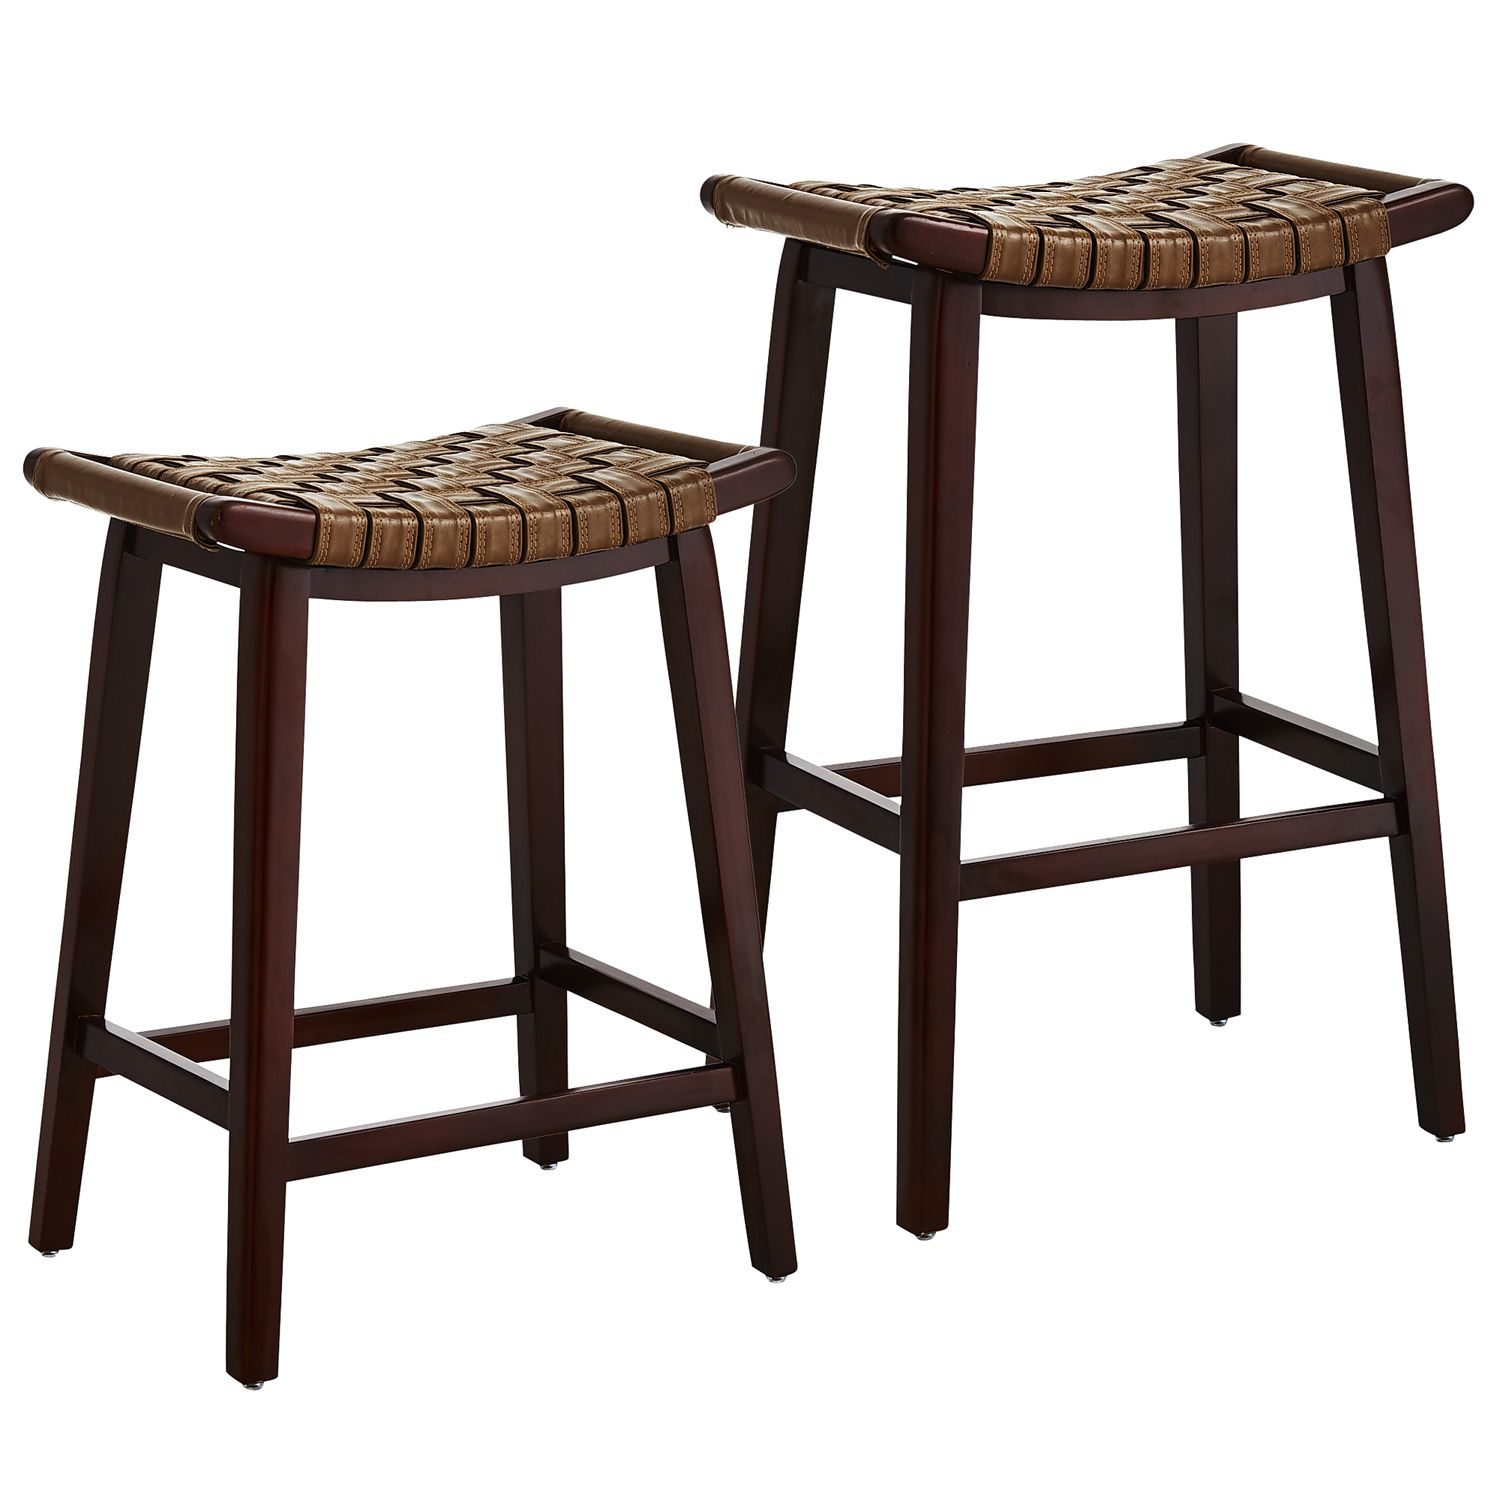 Brown Keating Backless Bar Counter Stools Woodland Faux Leather